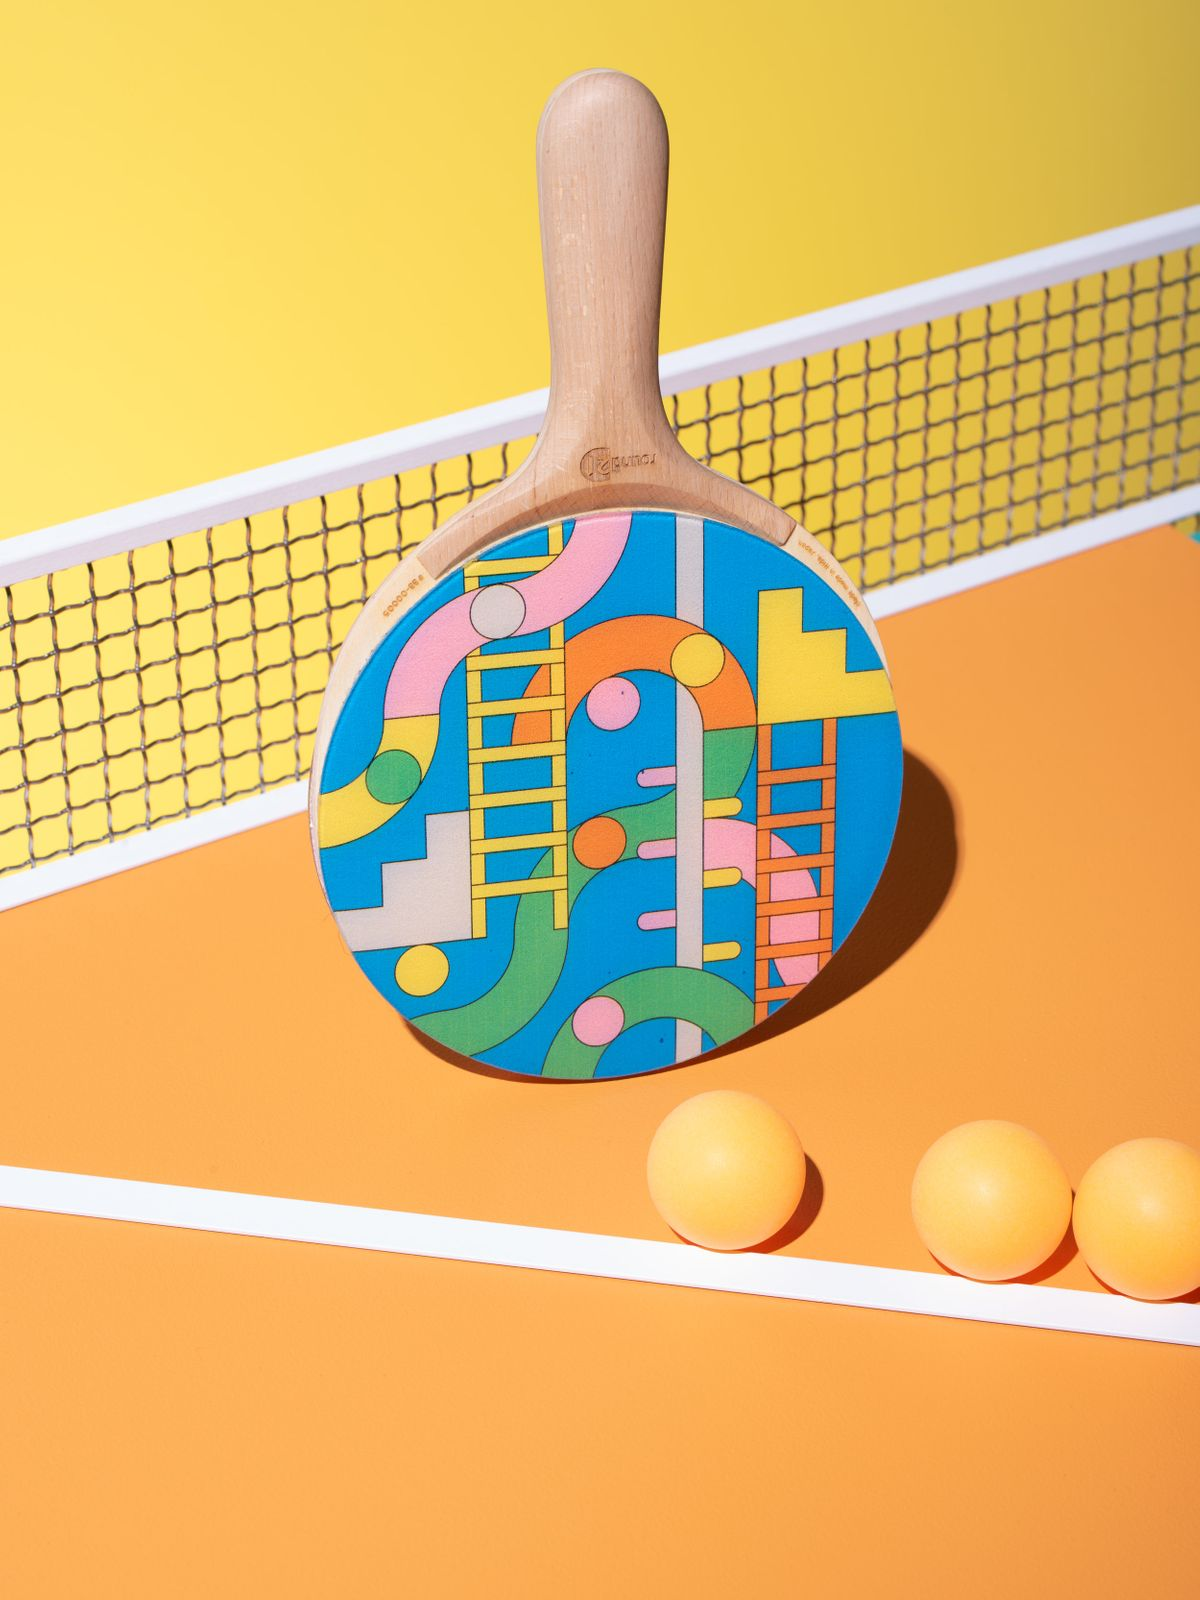 ping pong paddle with balls